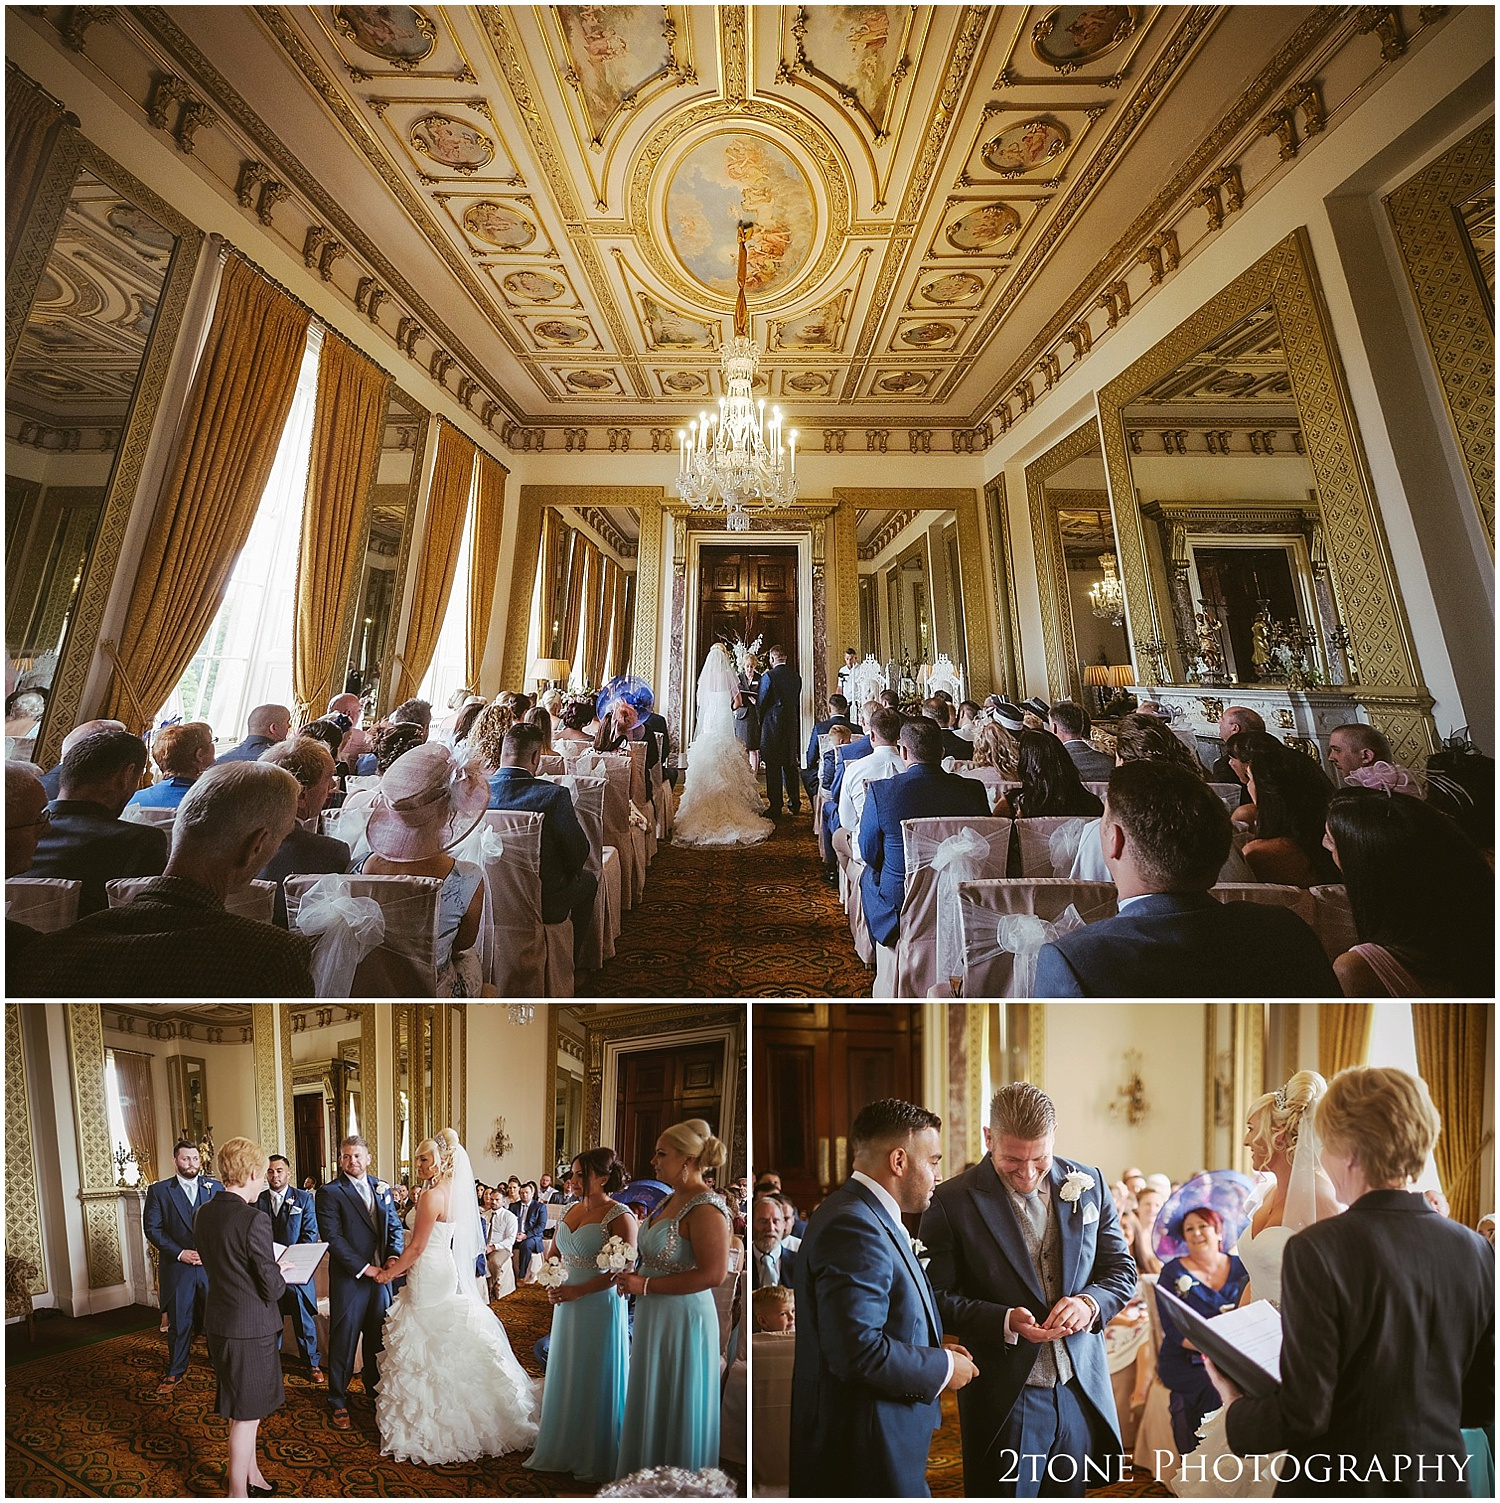 Wynyard Hall wedding by www.2tonephotography.co.uk 041.jpg